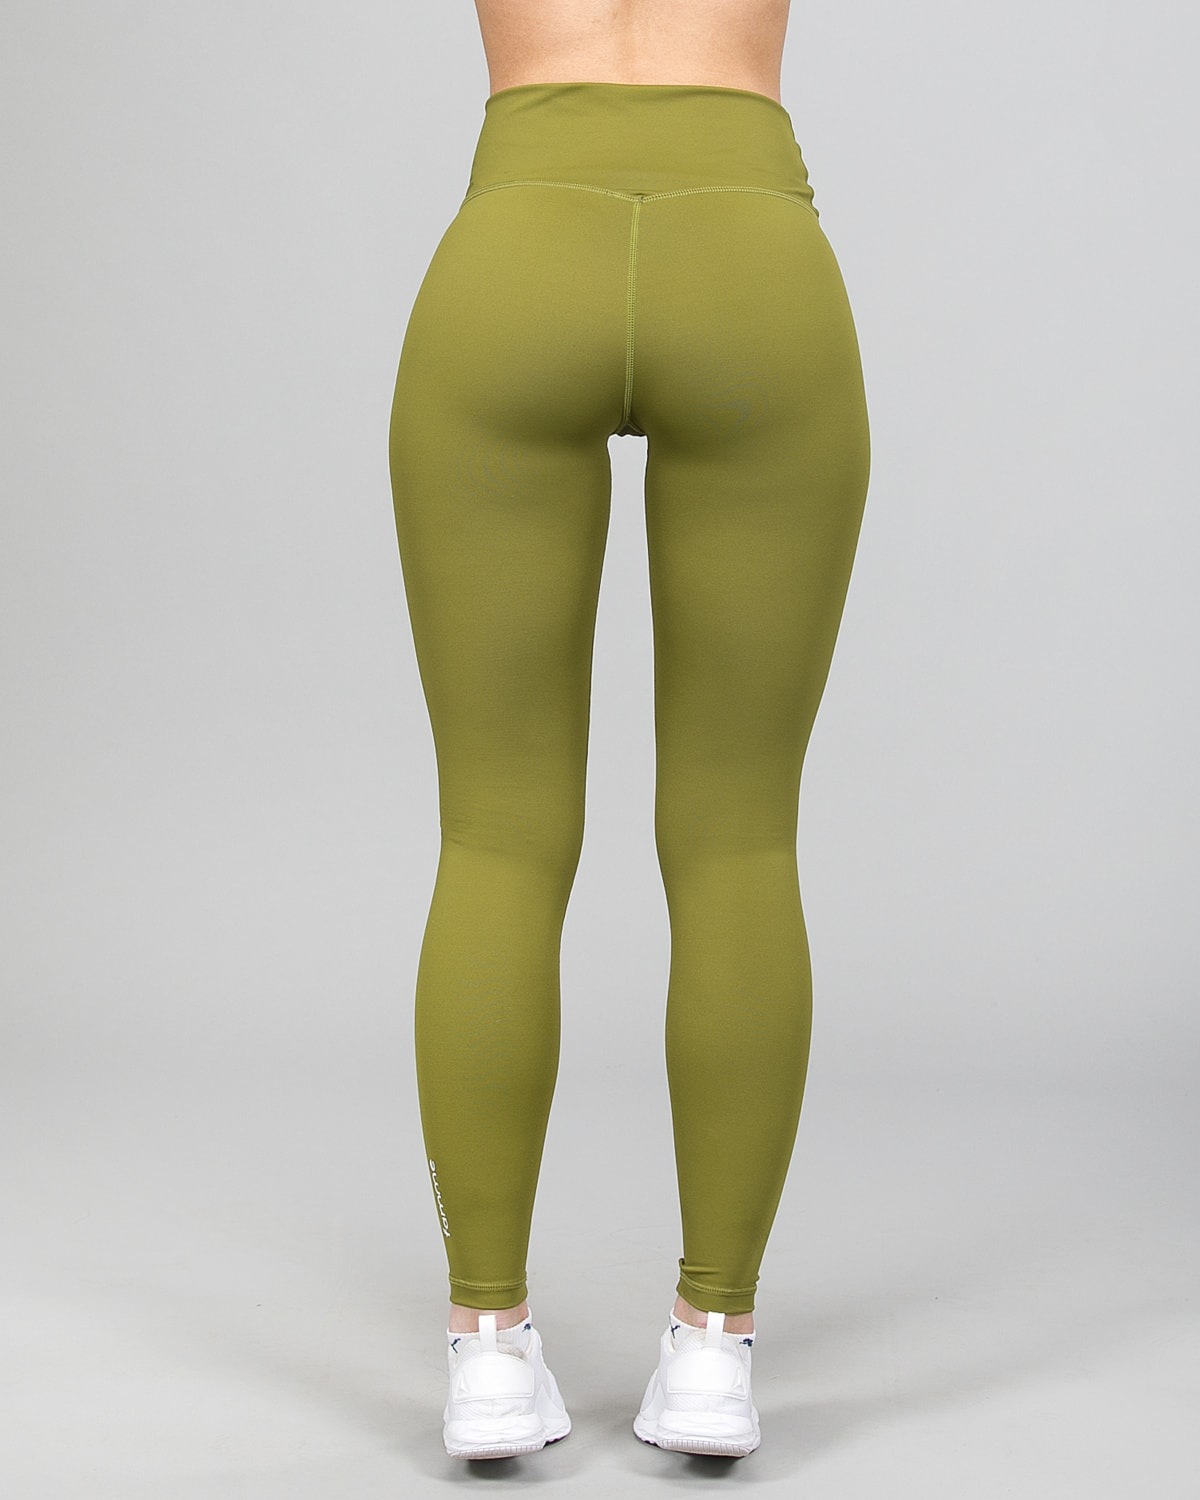 Famme Essential High Waist Legging – Forest Green ehwt-fg d